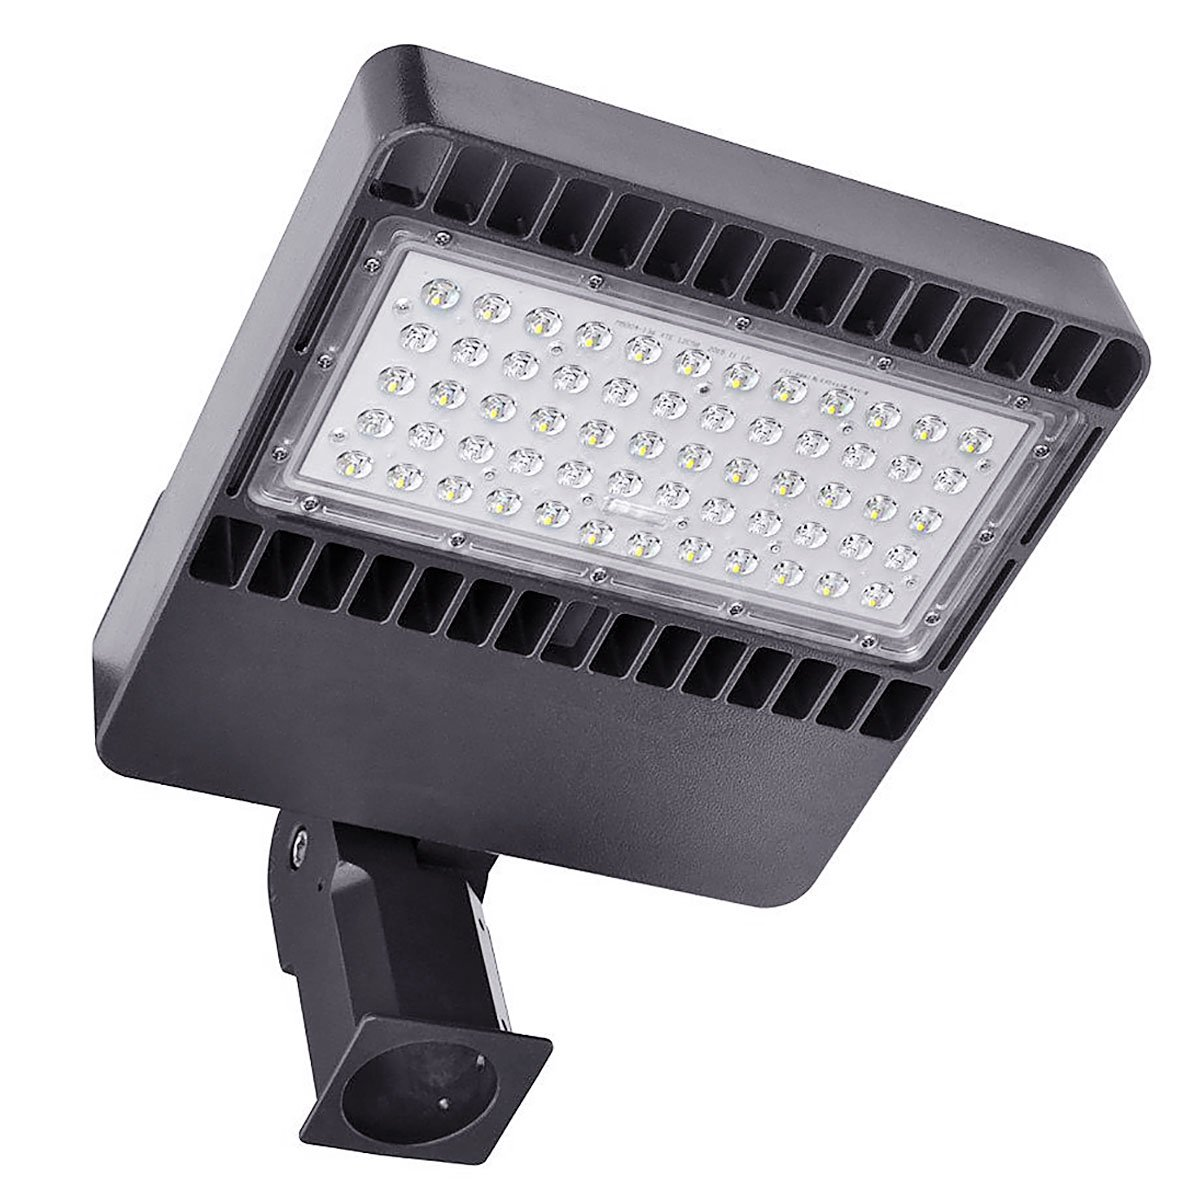 KAWELL LED Parking Lot Light, 150W (450W Eq.), 5000K, 16500 lumen, Direct Wiring AC 100-277V, Street Lights, Free Photocell Included, 120° Beam Angle, IP65, UL & DLC Listed, Base in USA by Kawell